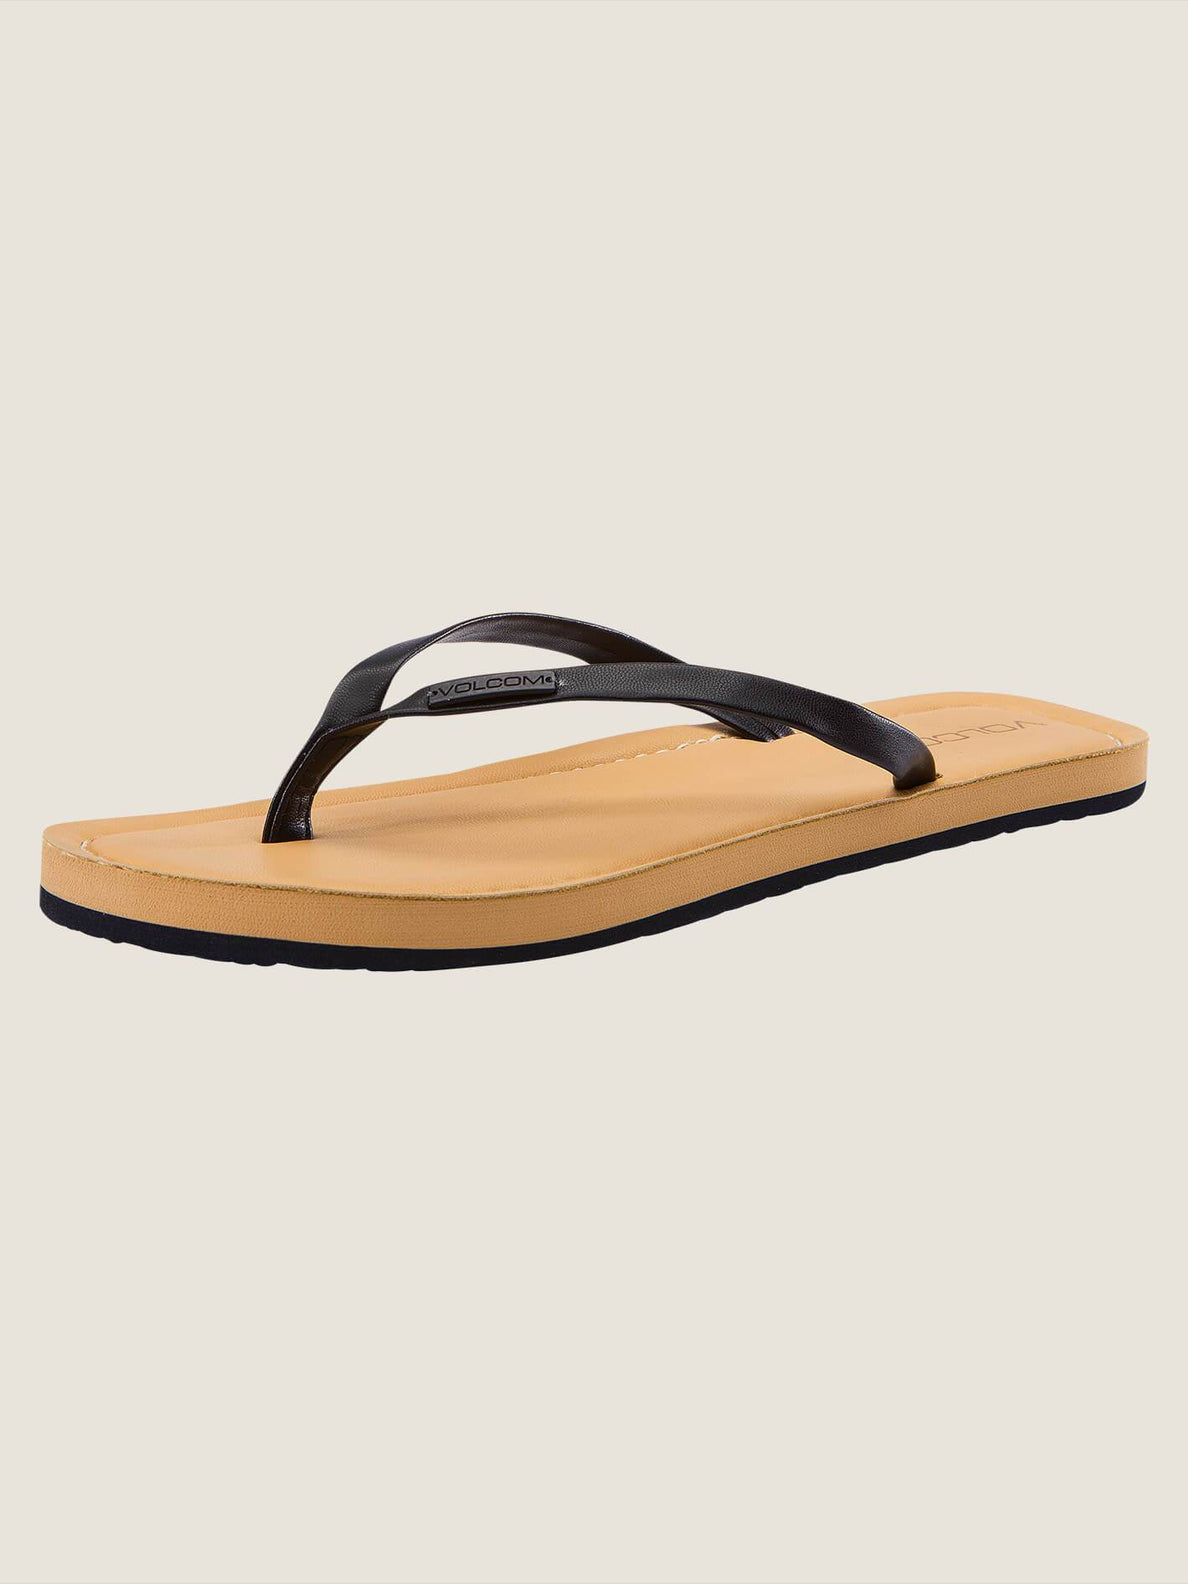 Lagos Sandals In Black, Back View